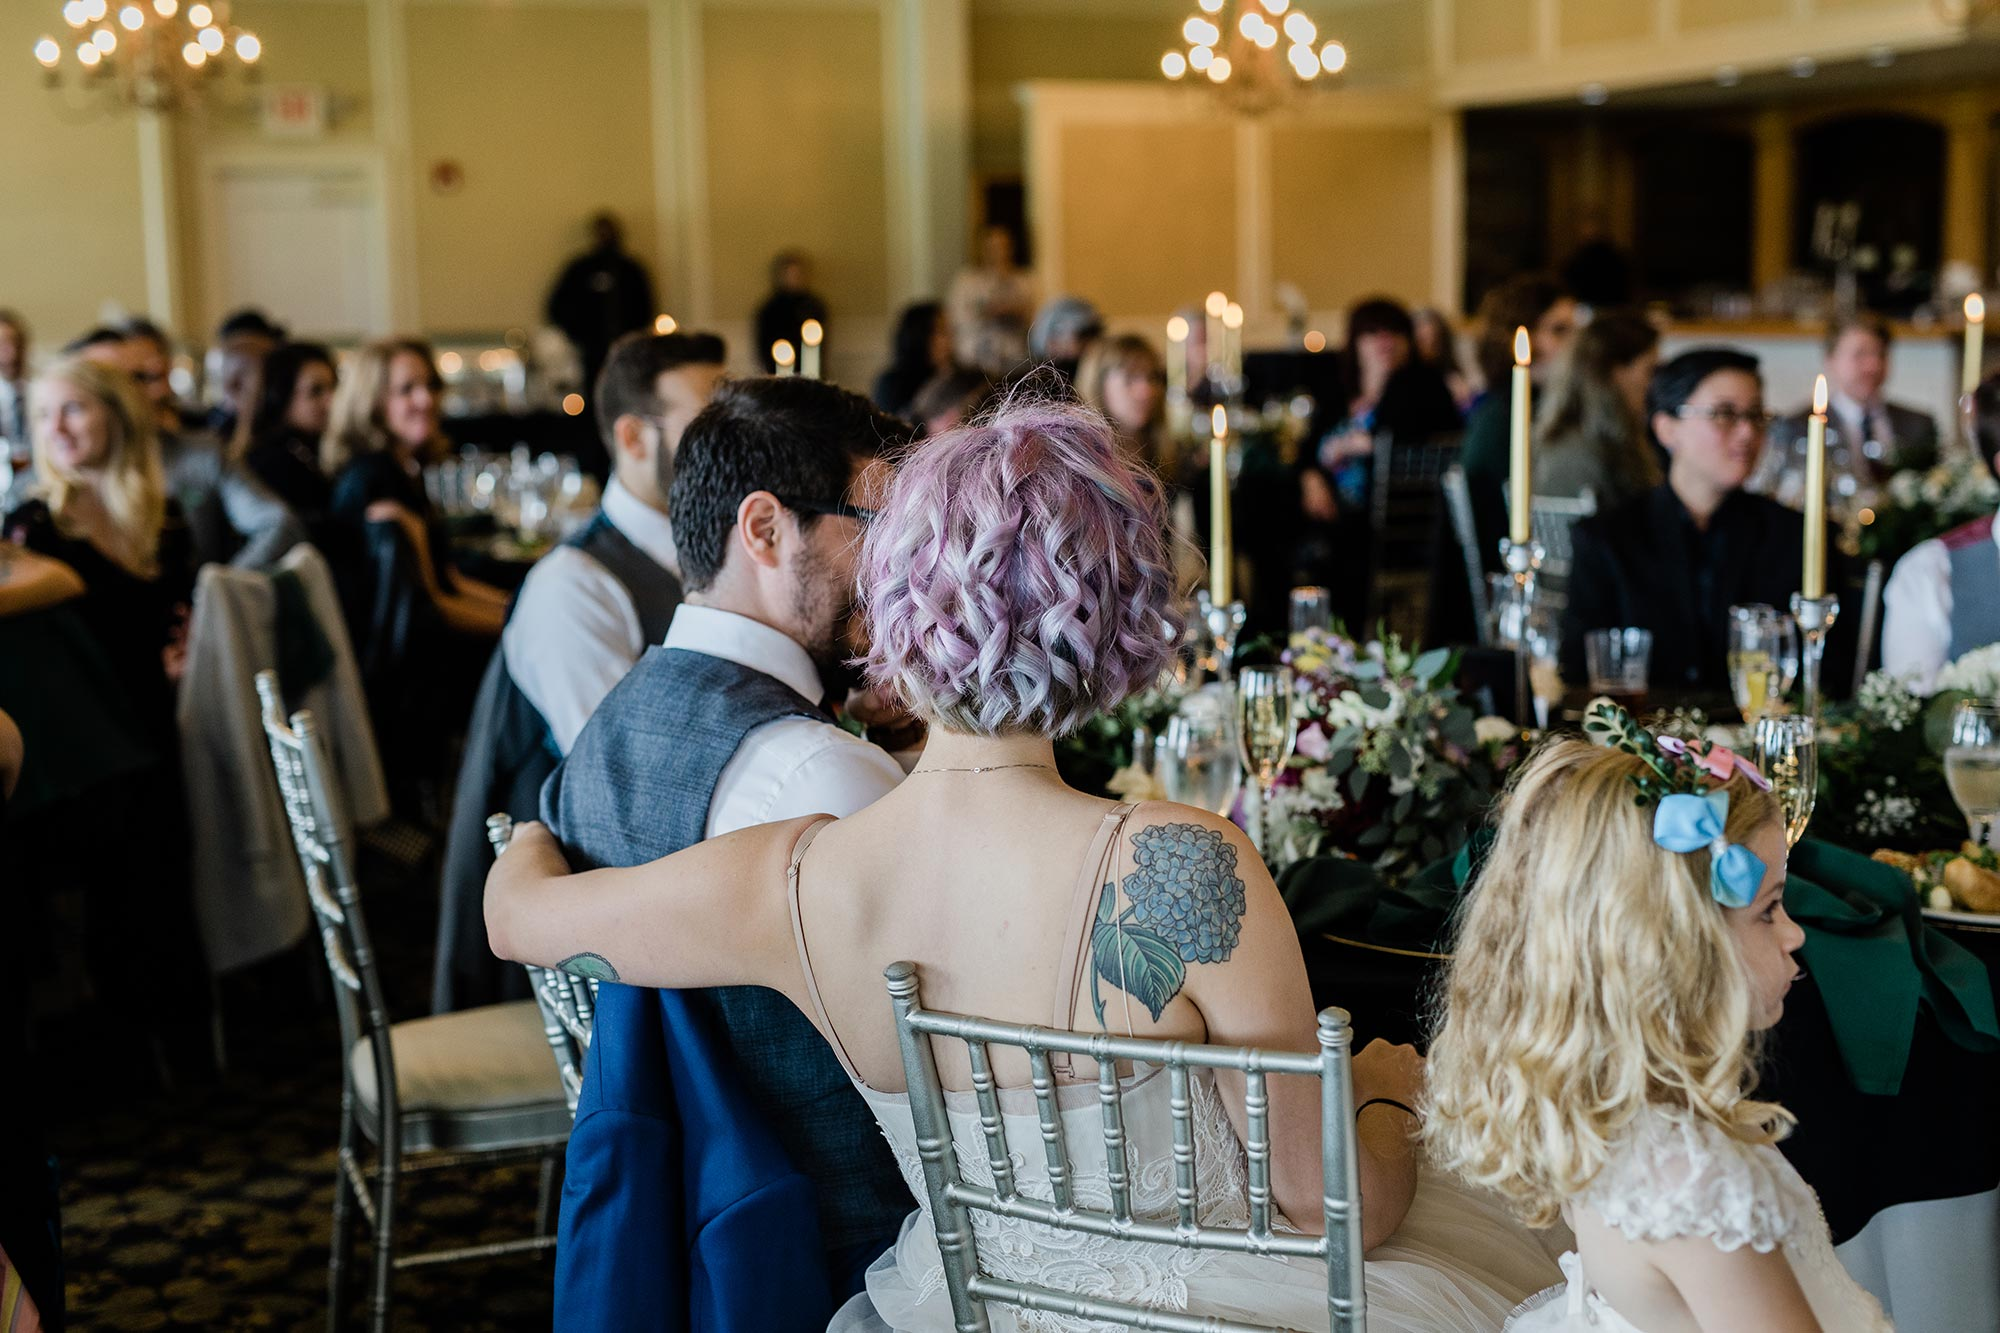 Chic Queer Wedding in West Chester Pennsylvania showing couple during reception Judson Rappaport Photography